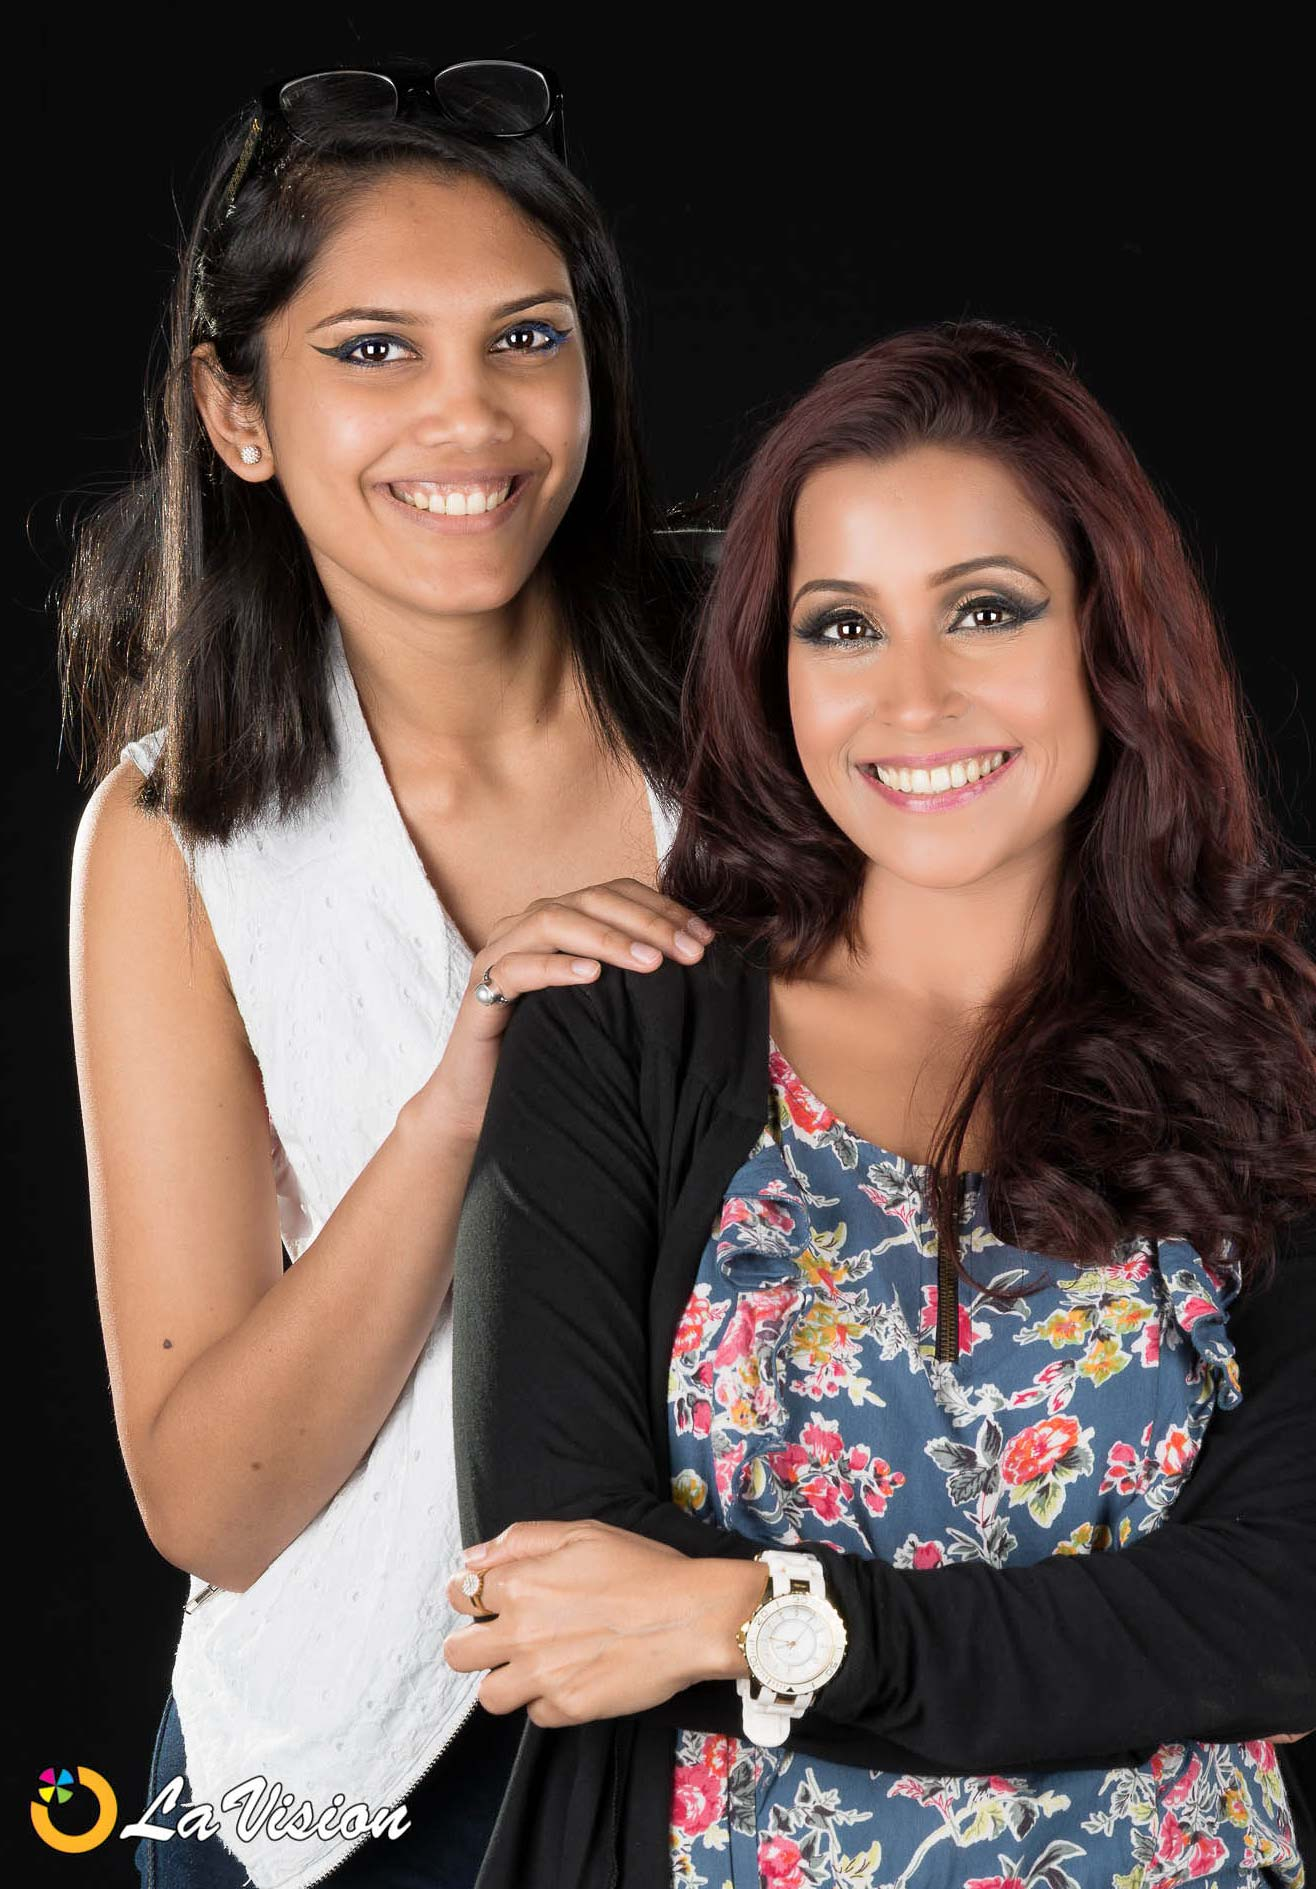 Svetlanna Meshra and Anchaya Sinha